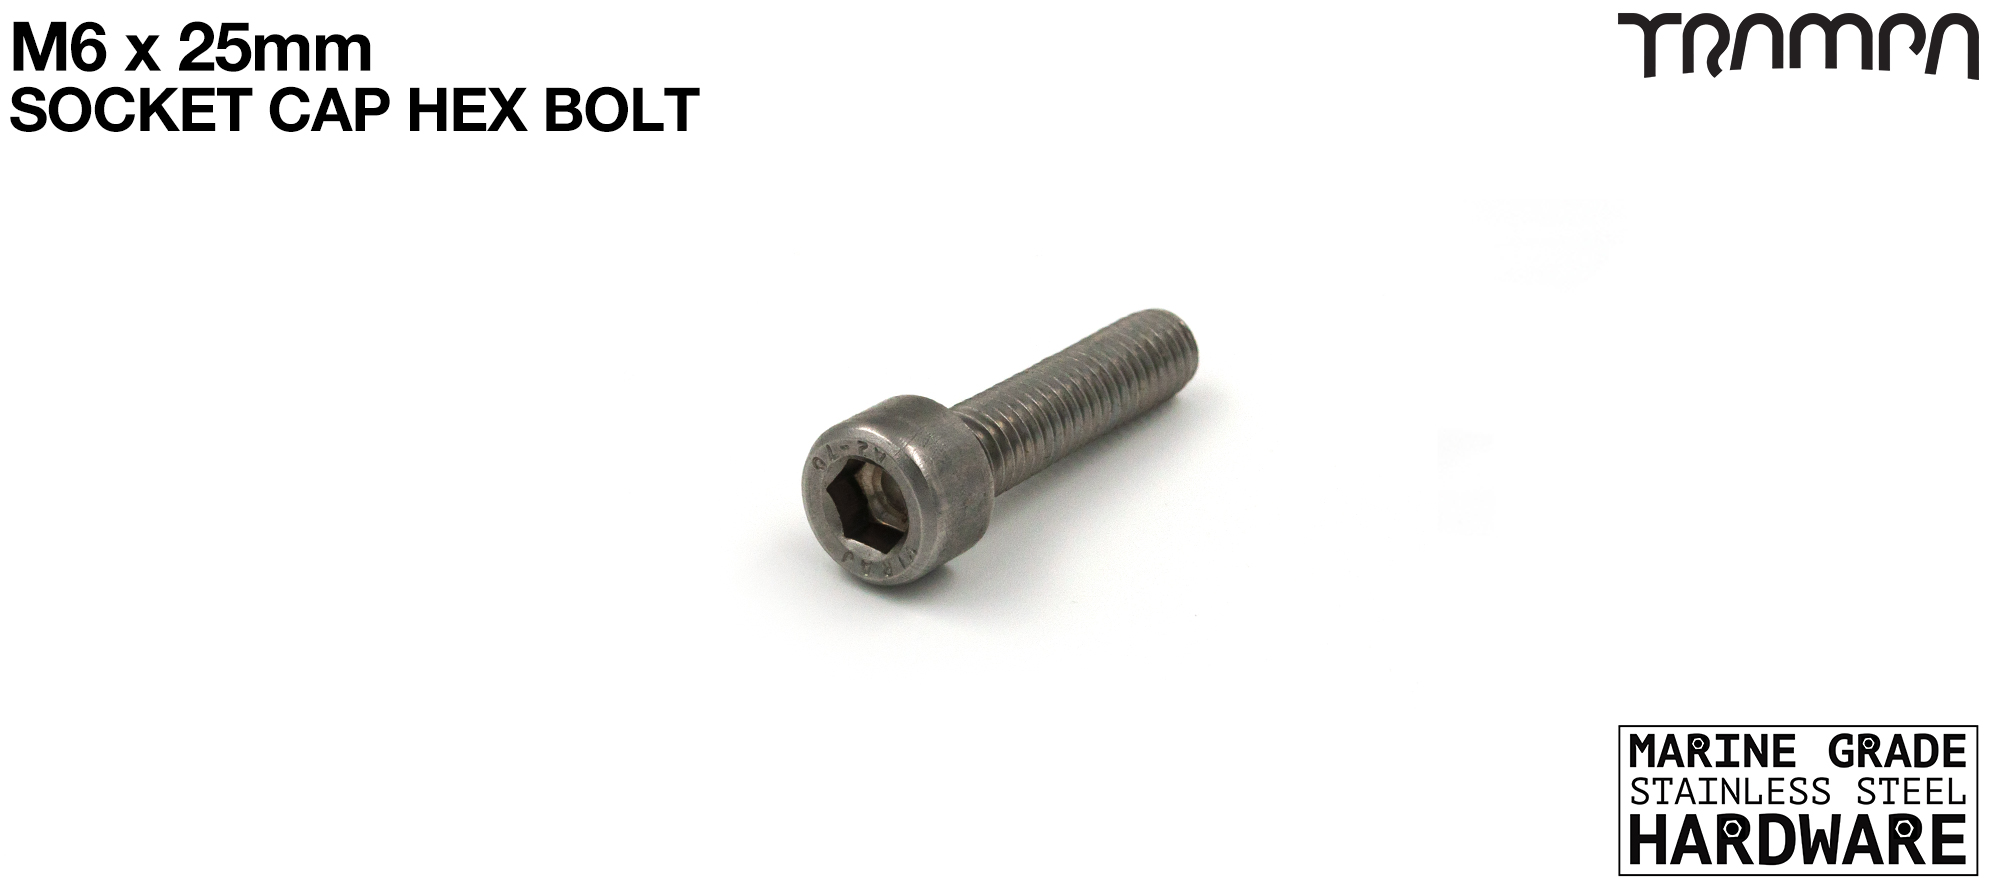 M6 x 25mm Socket Capped Bolt for OBD Mounts & Scooter Clamps